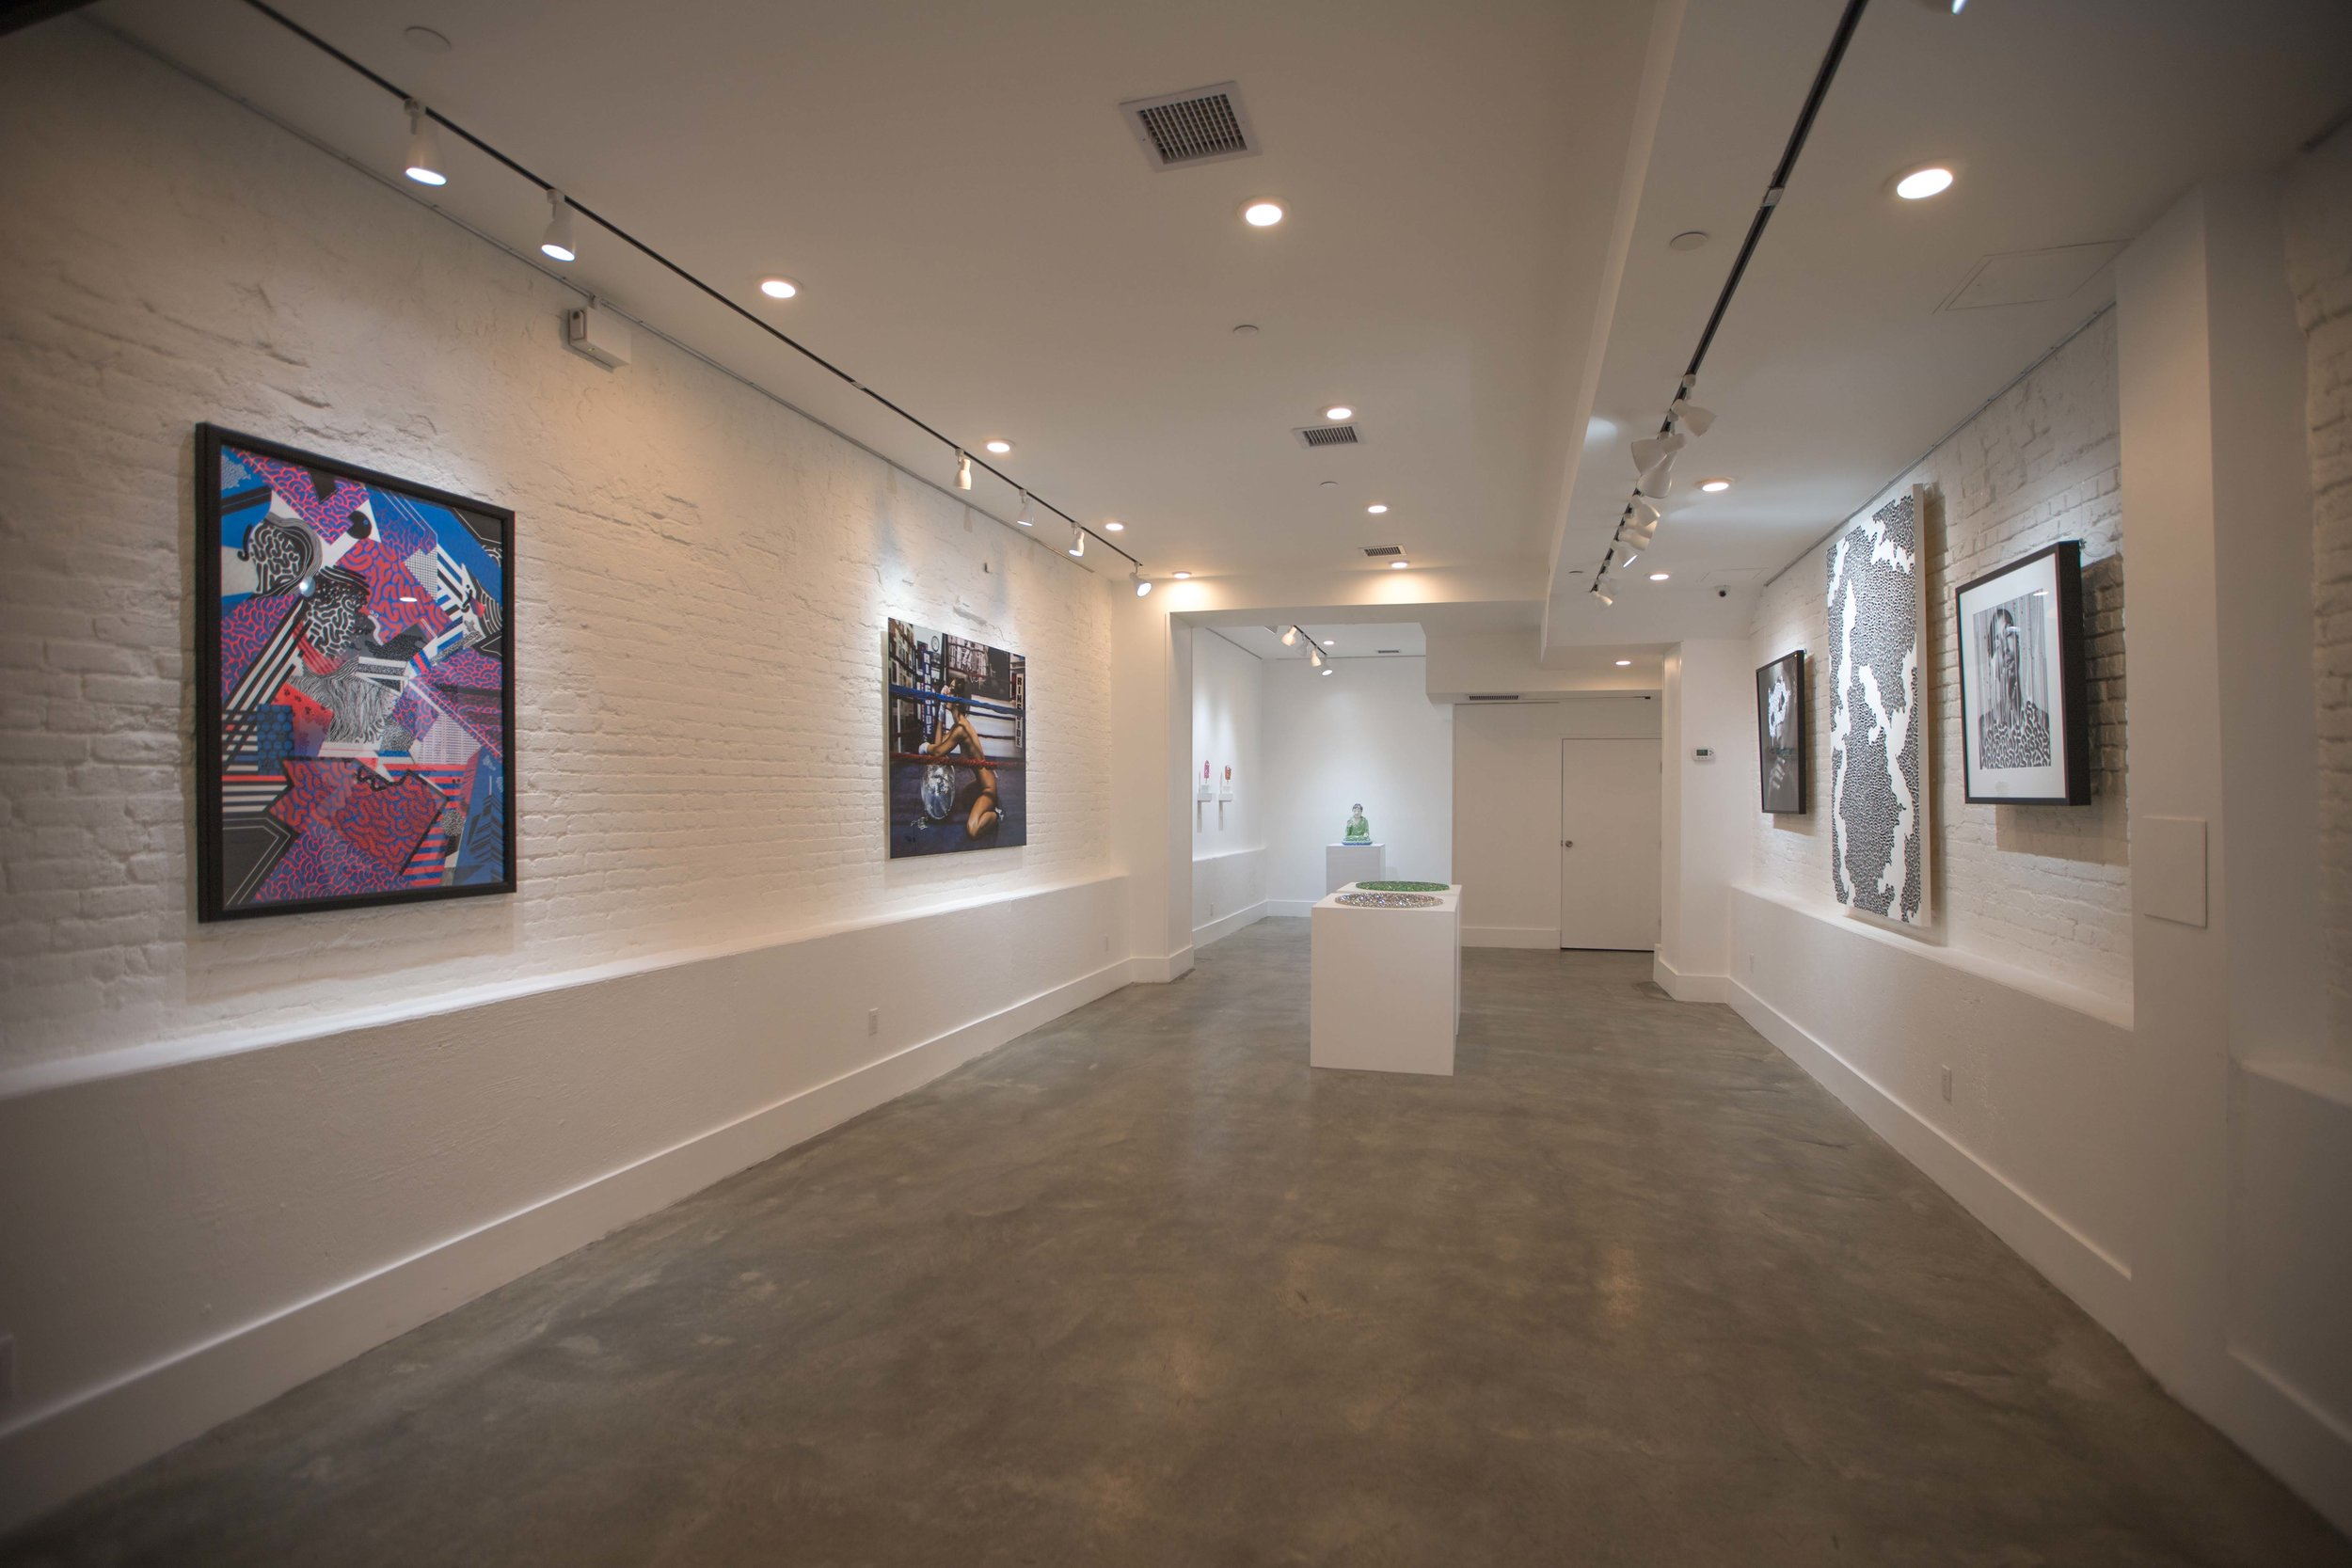 EAST COAST VS. WEST COAST   GROUP SHOW  May 10 - May 31, 2018 Opening Thursday, May 10, 7-10PM   View Exhibition